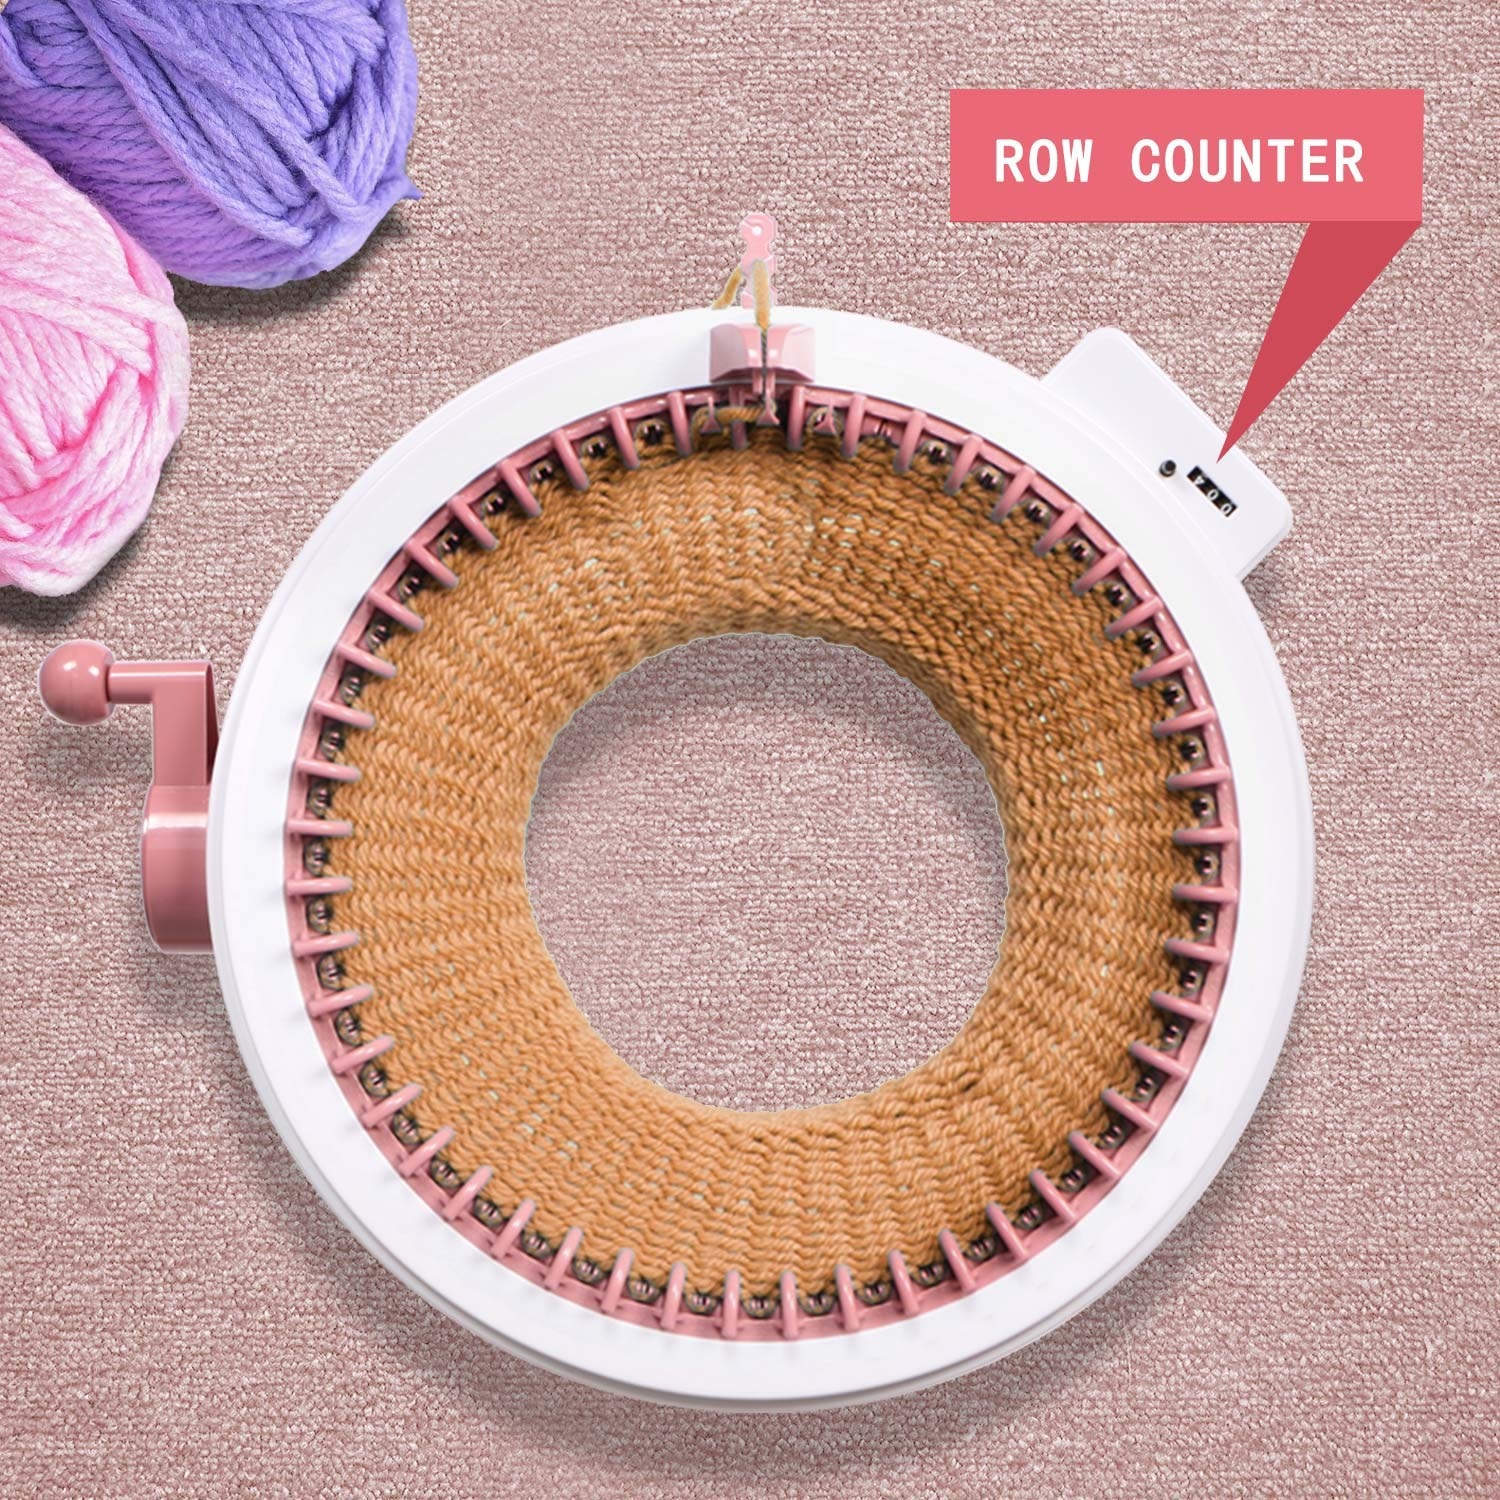 Weaving Loom for Adults or Kids Knitting Board Rotating Double Knit Loom for Sock//Hat 48 Needles Smart Weaving Loom Round Knitting Machines Knitting Machine with Row Counter